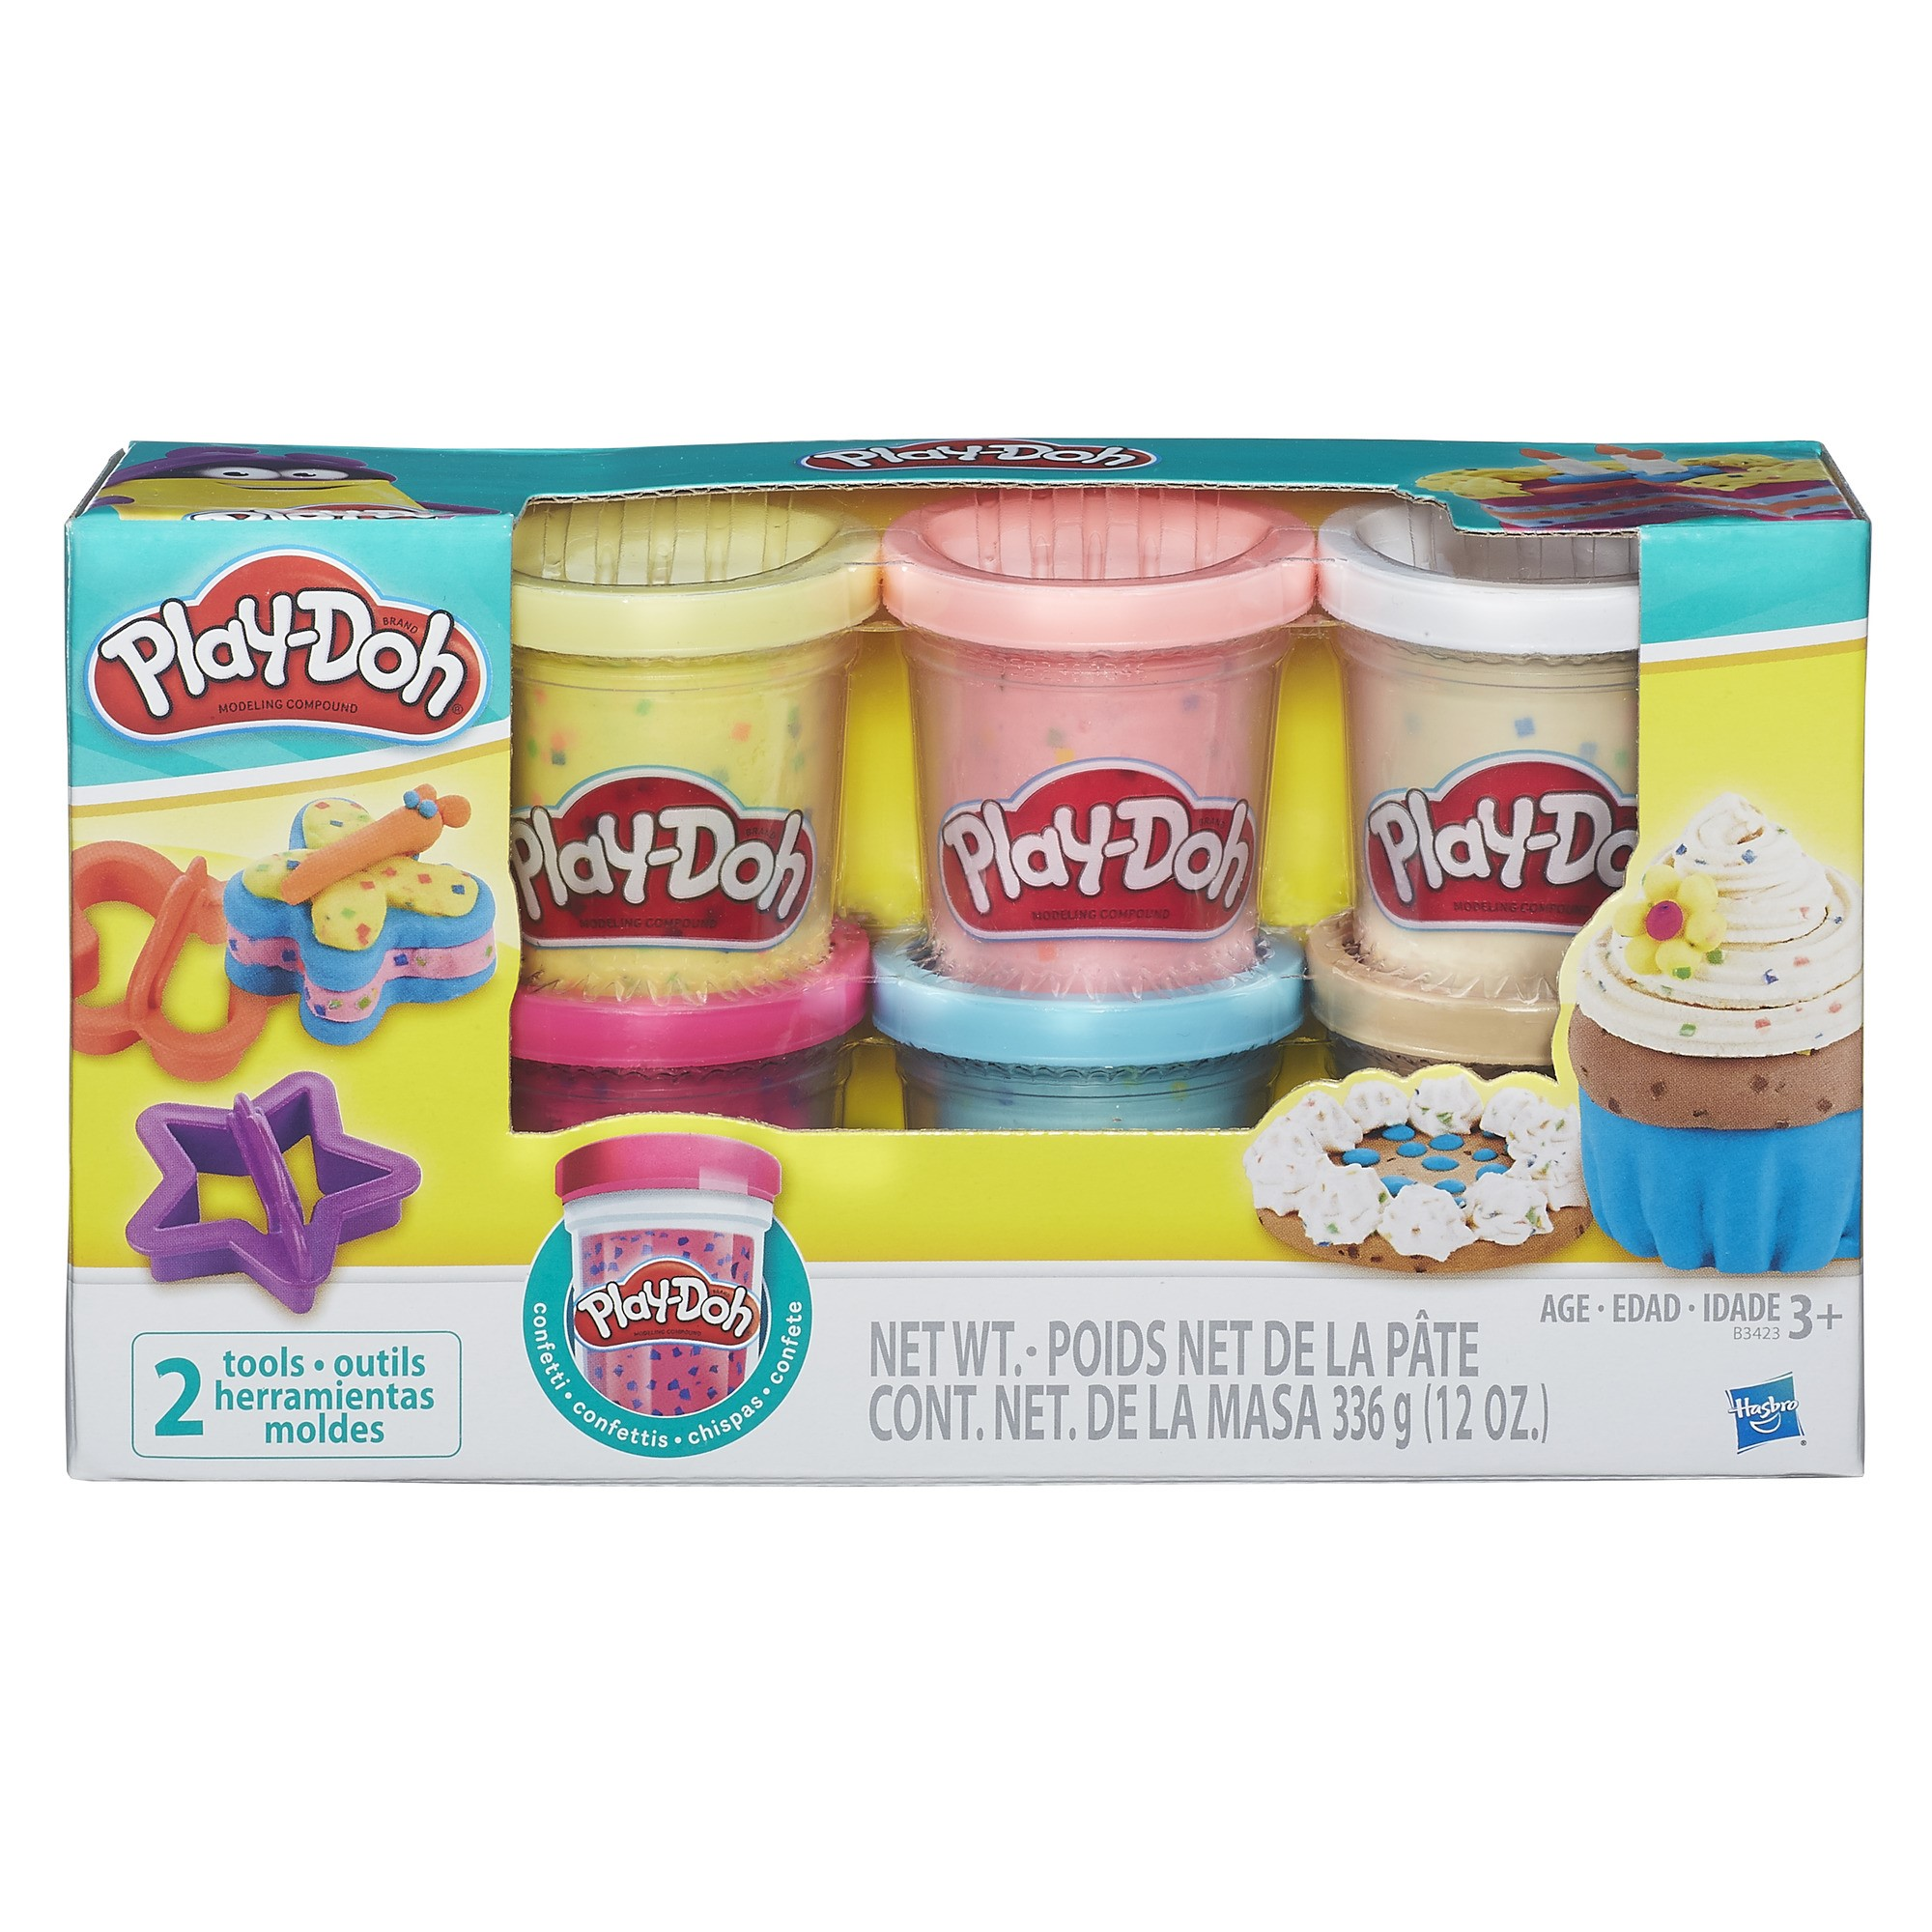 Play-Doh Confetti 6 Pack with Tools, 12 oz